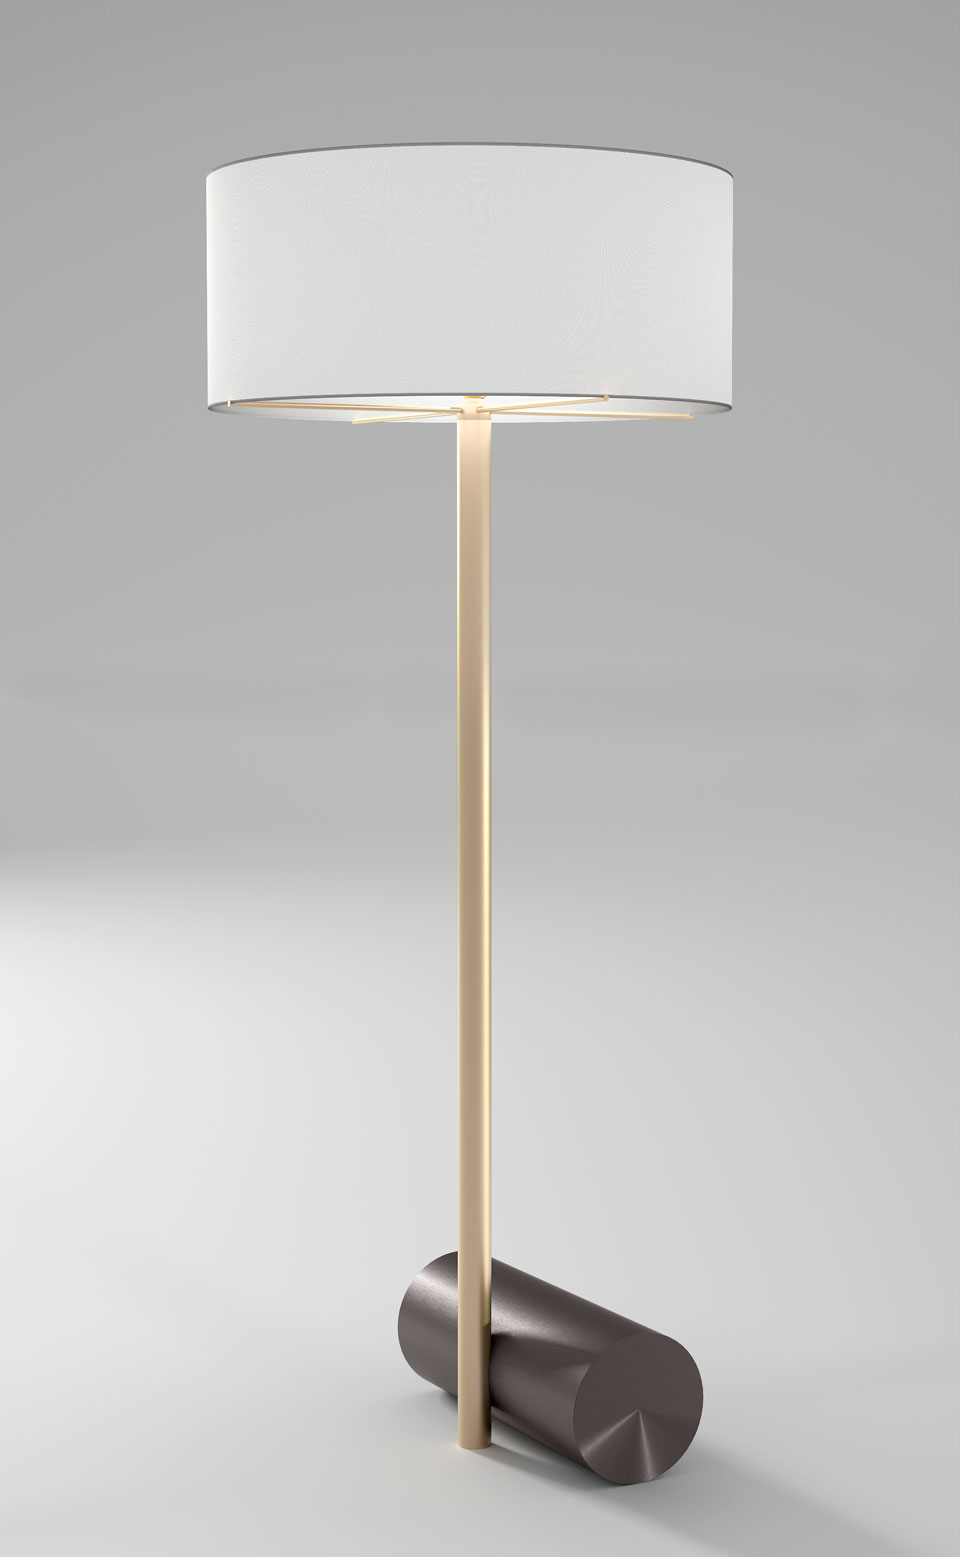 Calée XL Large Floor Lamp, Cylindrical Base, Satin Brass And Graphite. CVL  Luminaires